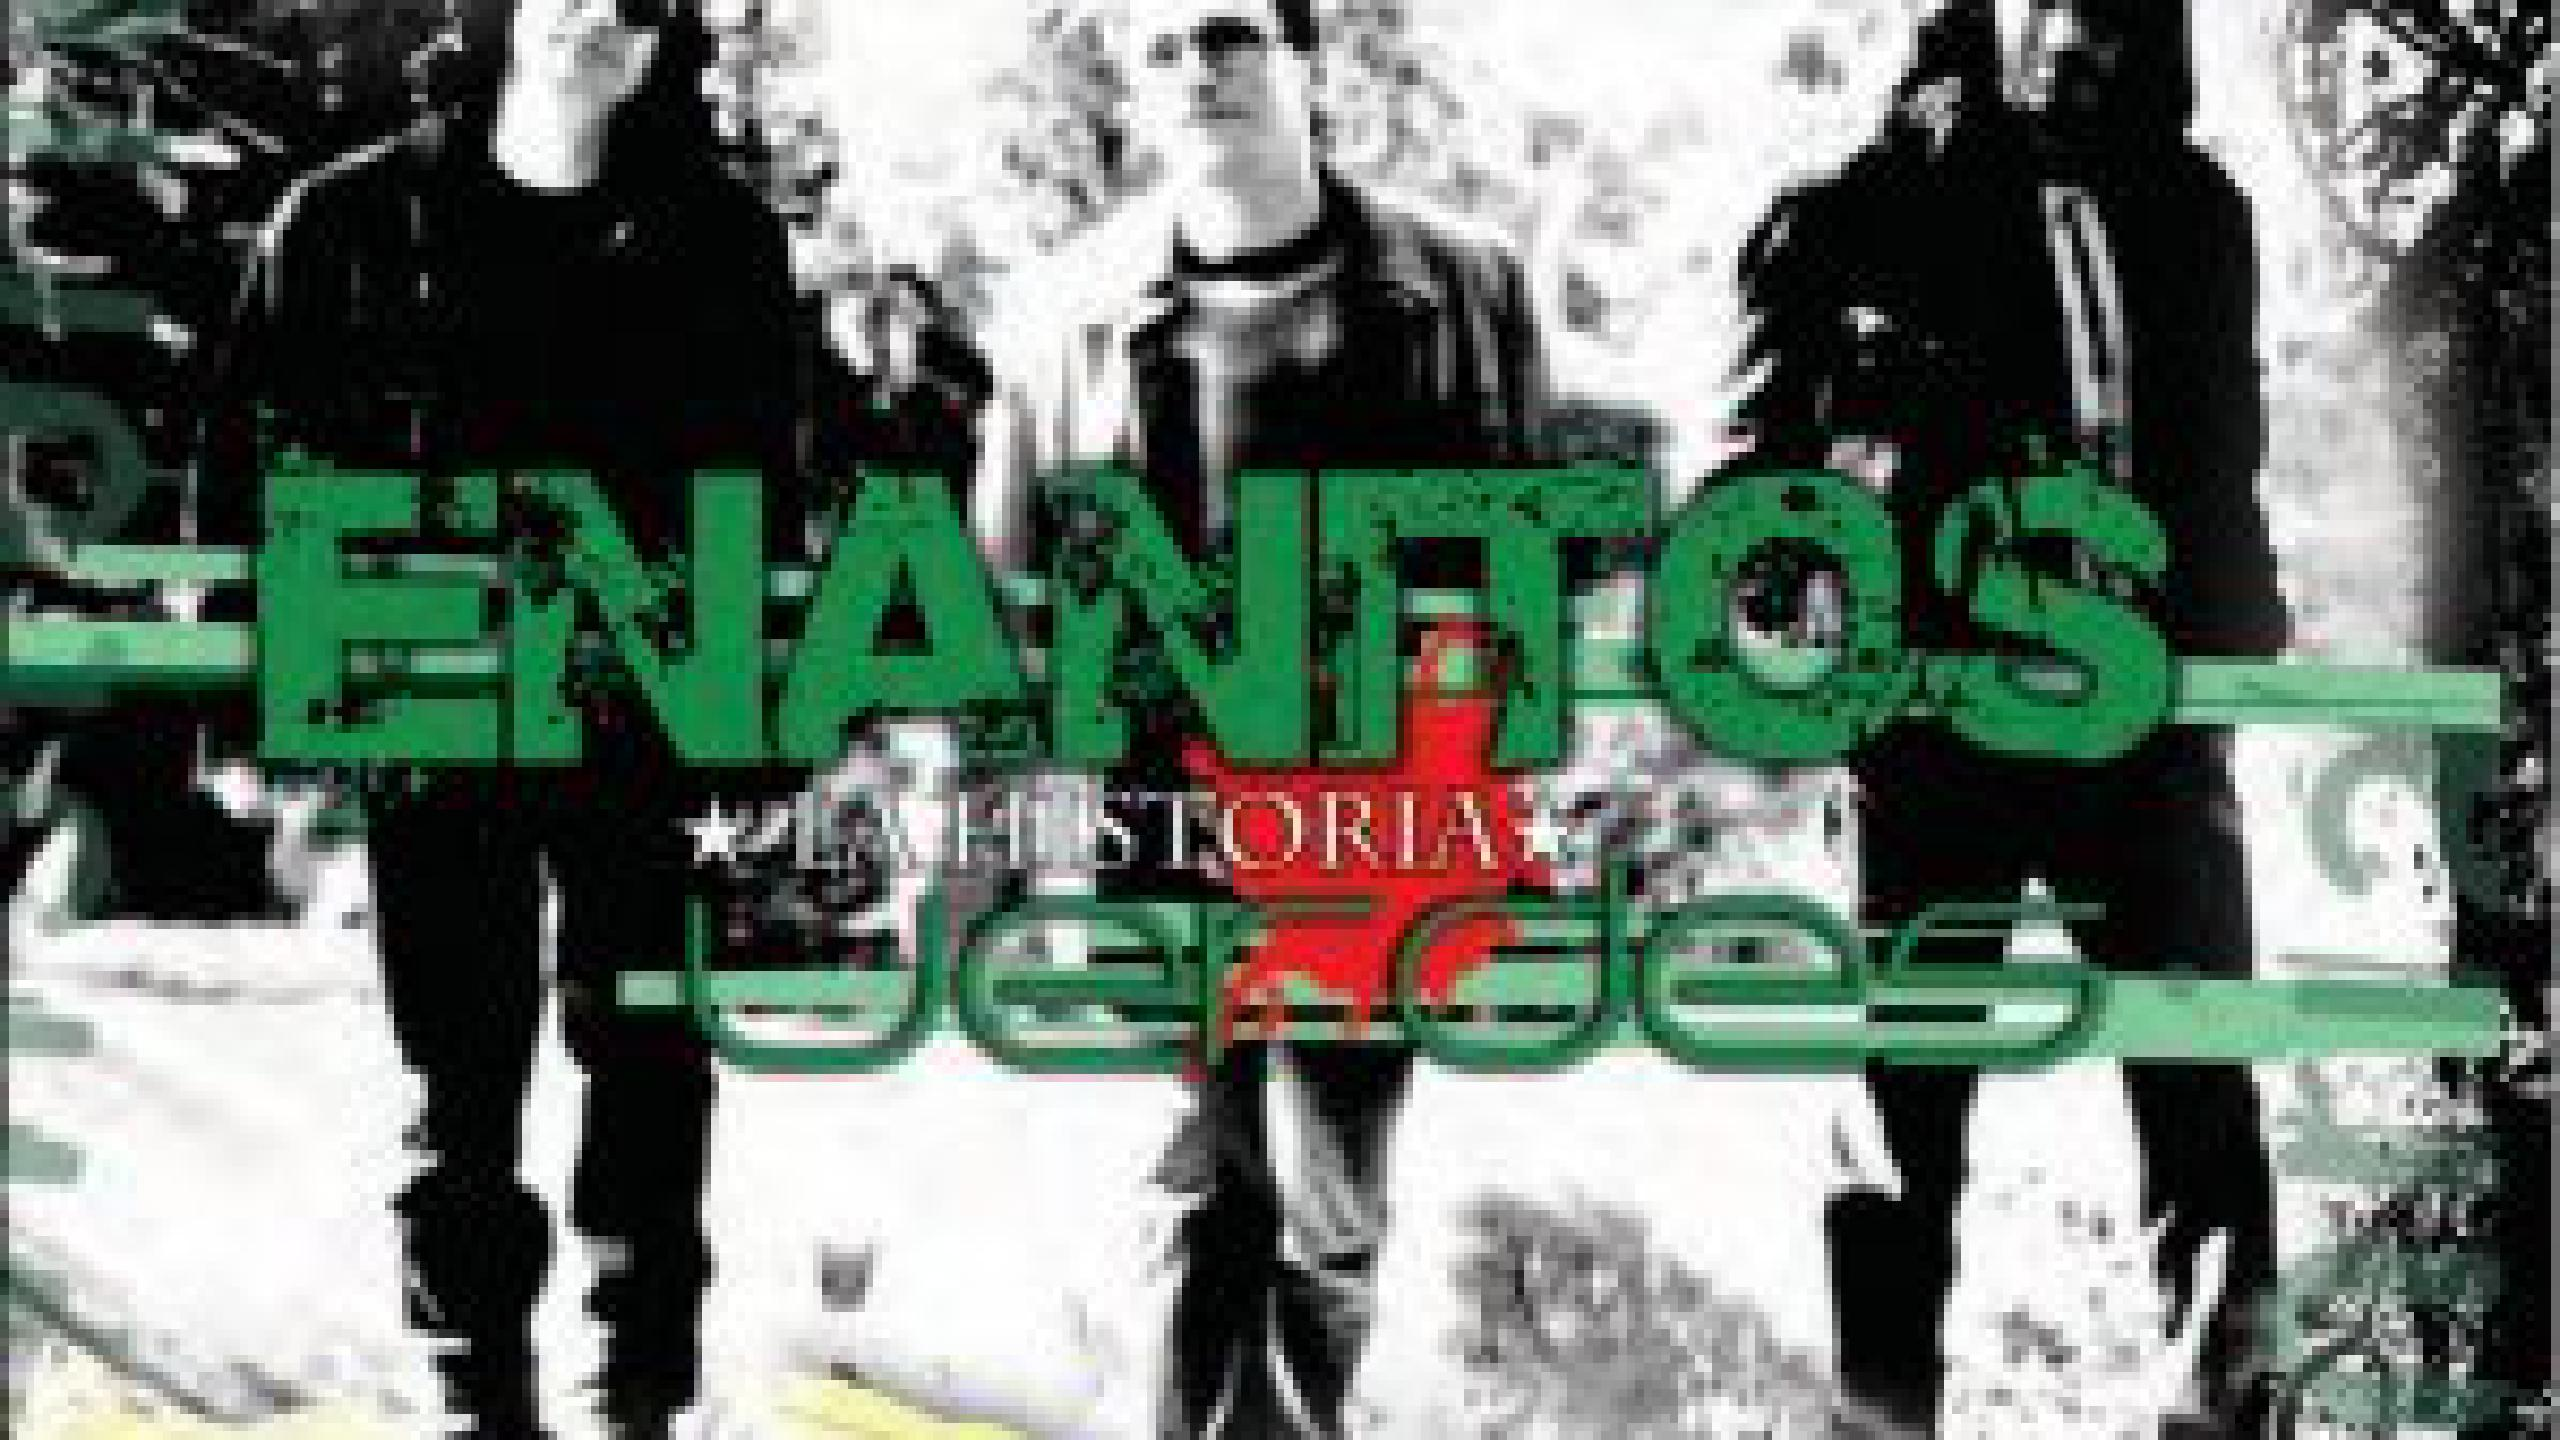 Enanitos Verdes Tour 2020 Enanitos Verdes tour dates 2019 2020. Enanitos Verdes tickets and